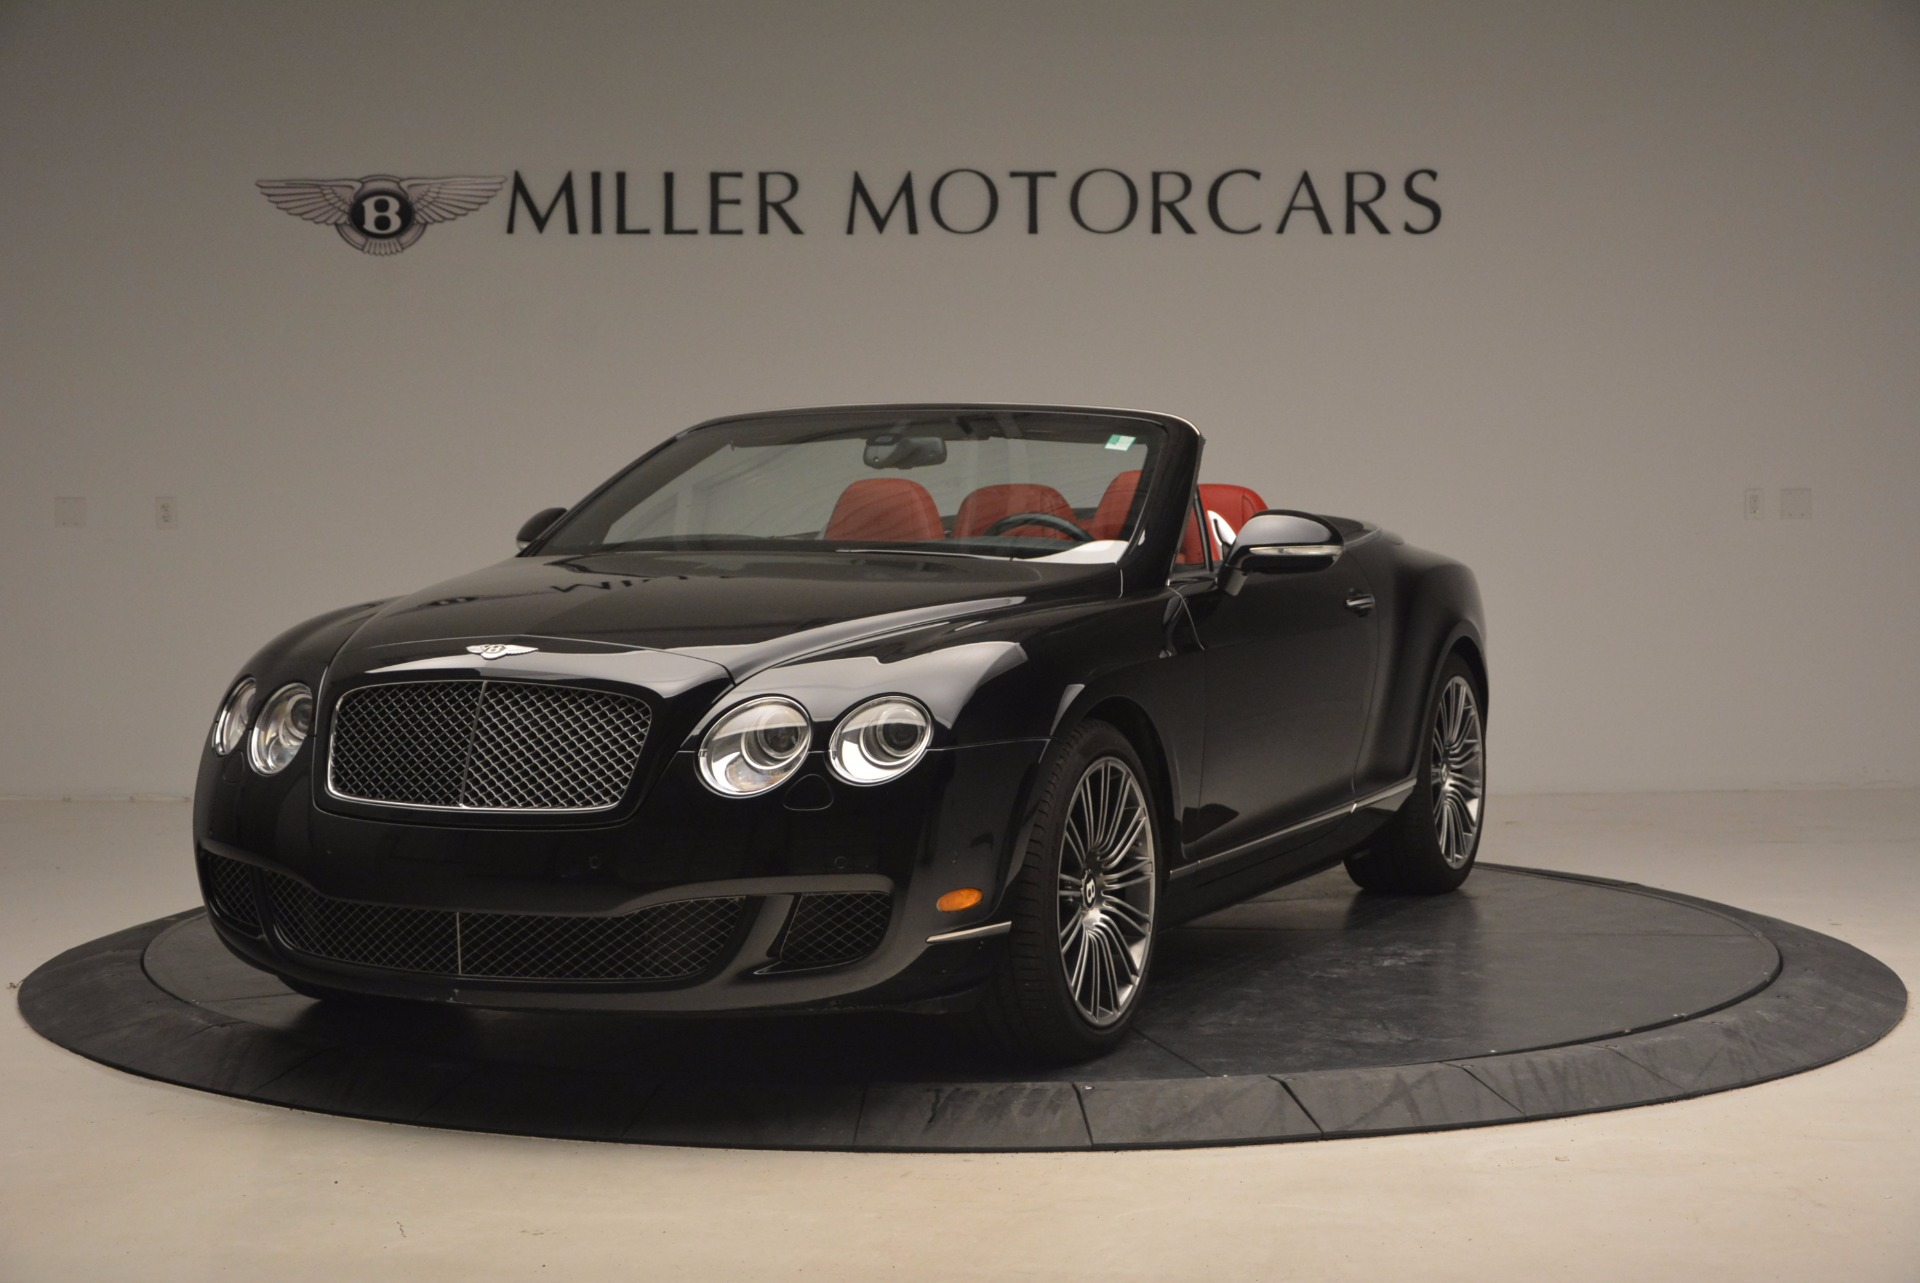 Used 2010 Bentley Continental GT Speed for sale Sold at Maserati of Westport in Westport CT 06880 1